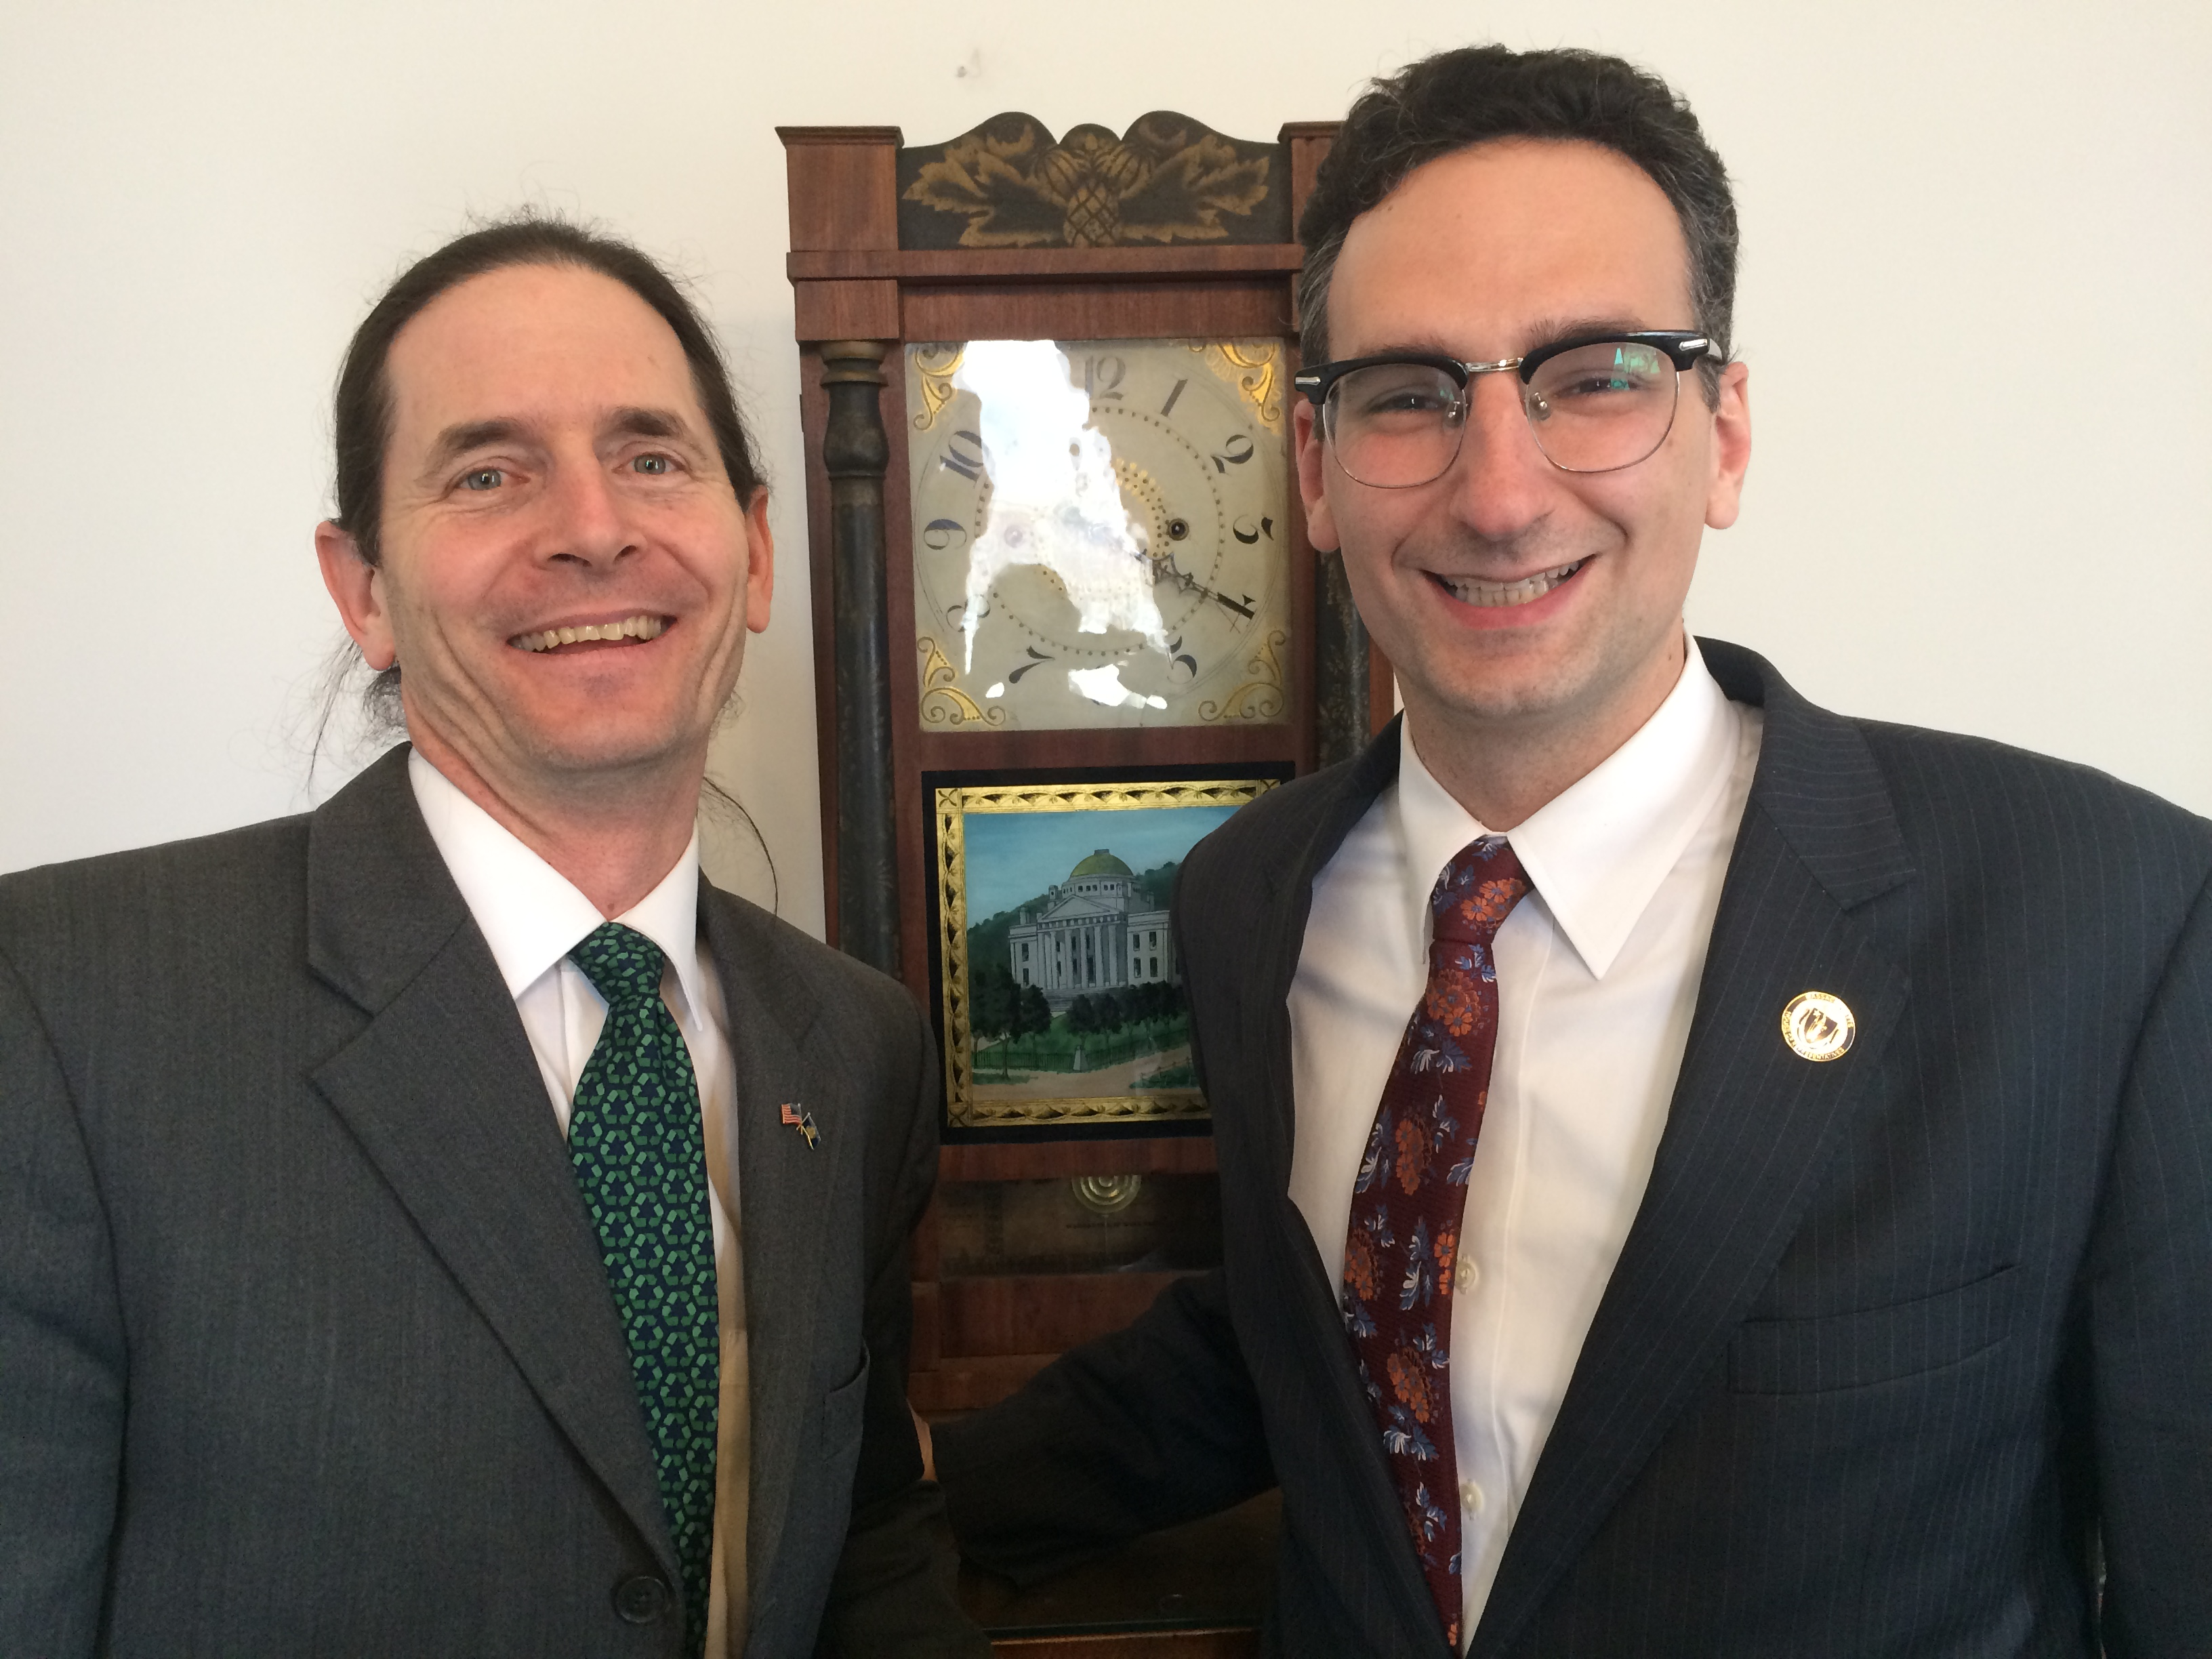 Tommy Vitolo with Lt Governor David Zuckerman